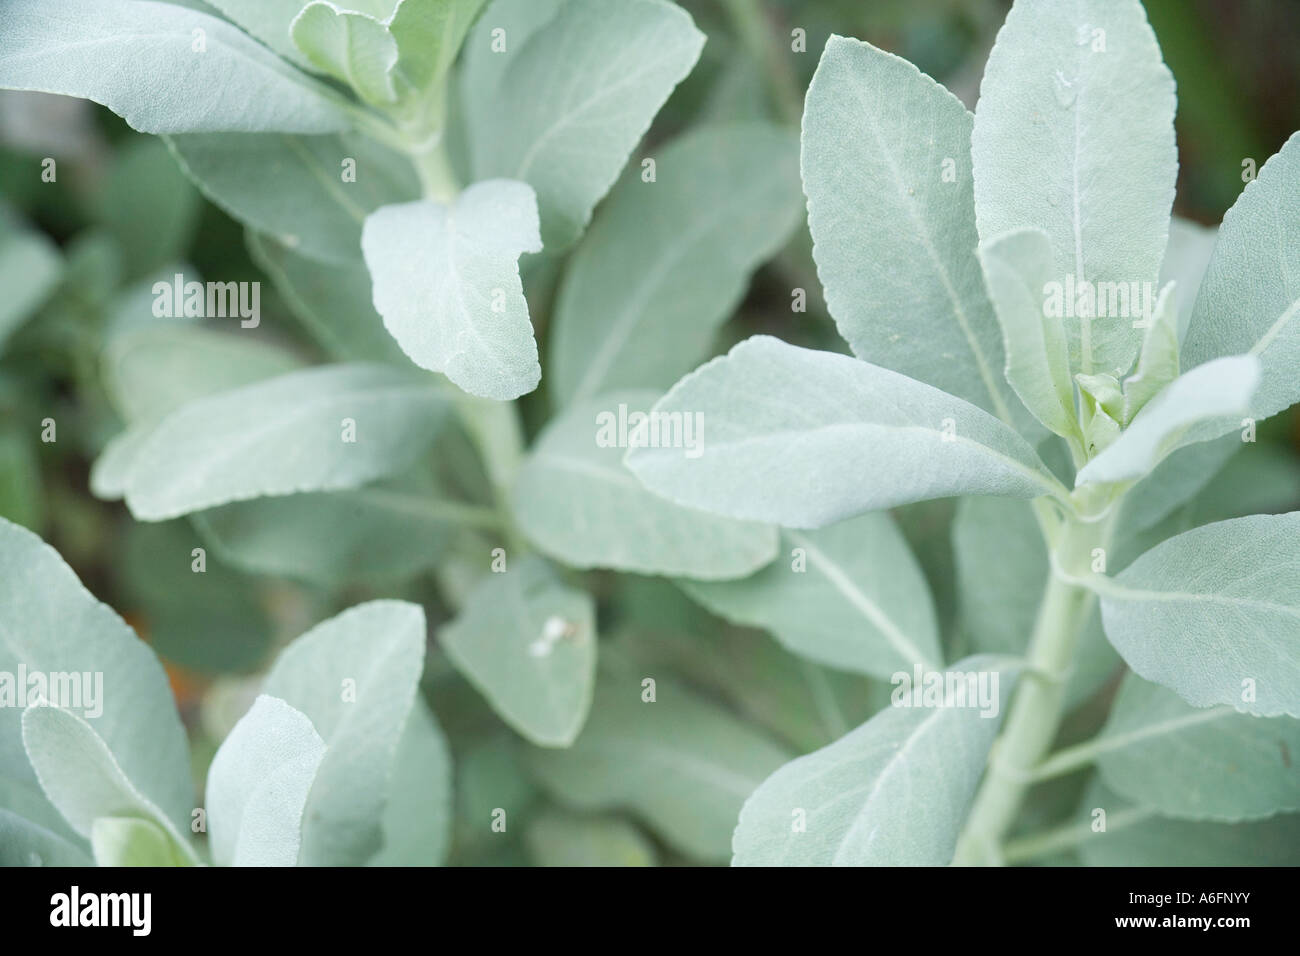 Close Up Of Native American Ceremonial White Sage Plant Stock Photo